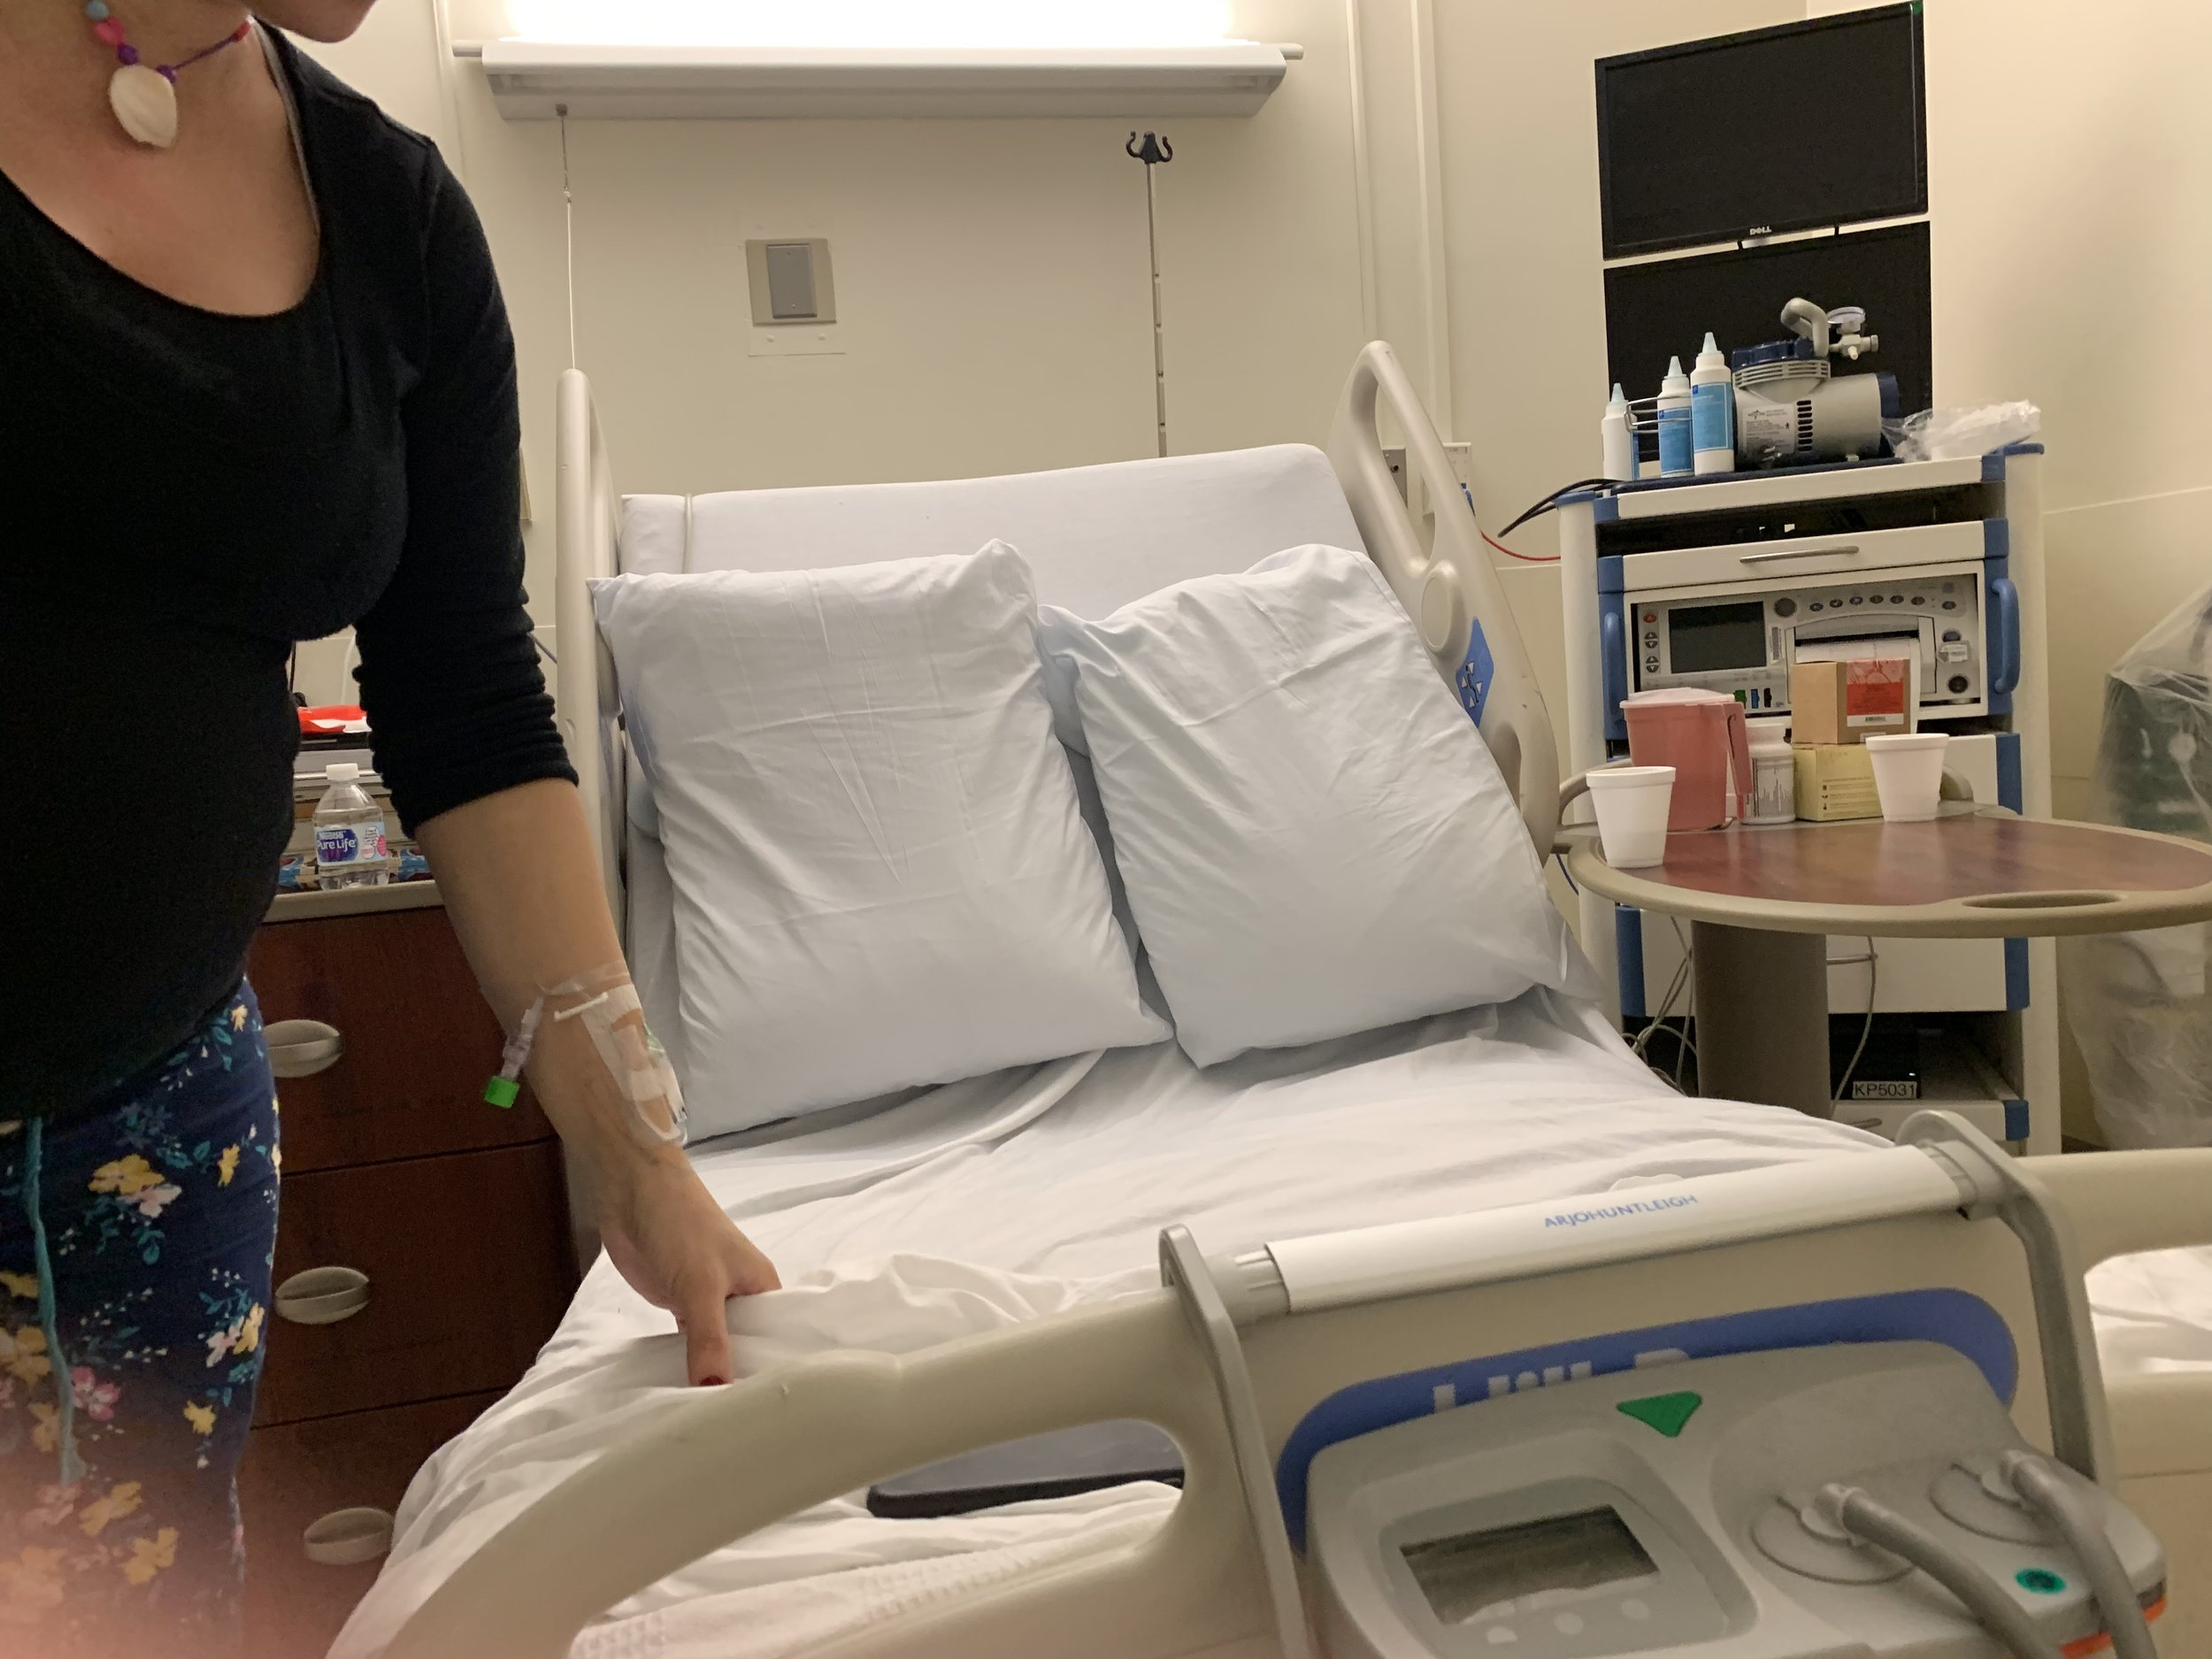 Lucie took this candid of me making the hospital bed. I thought it was a cool perspective.